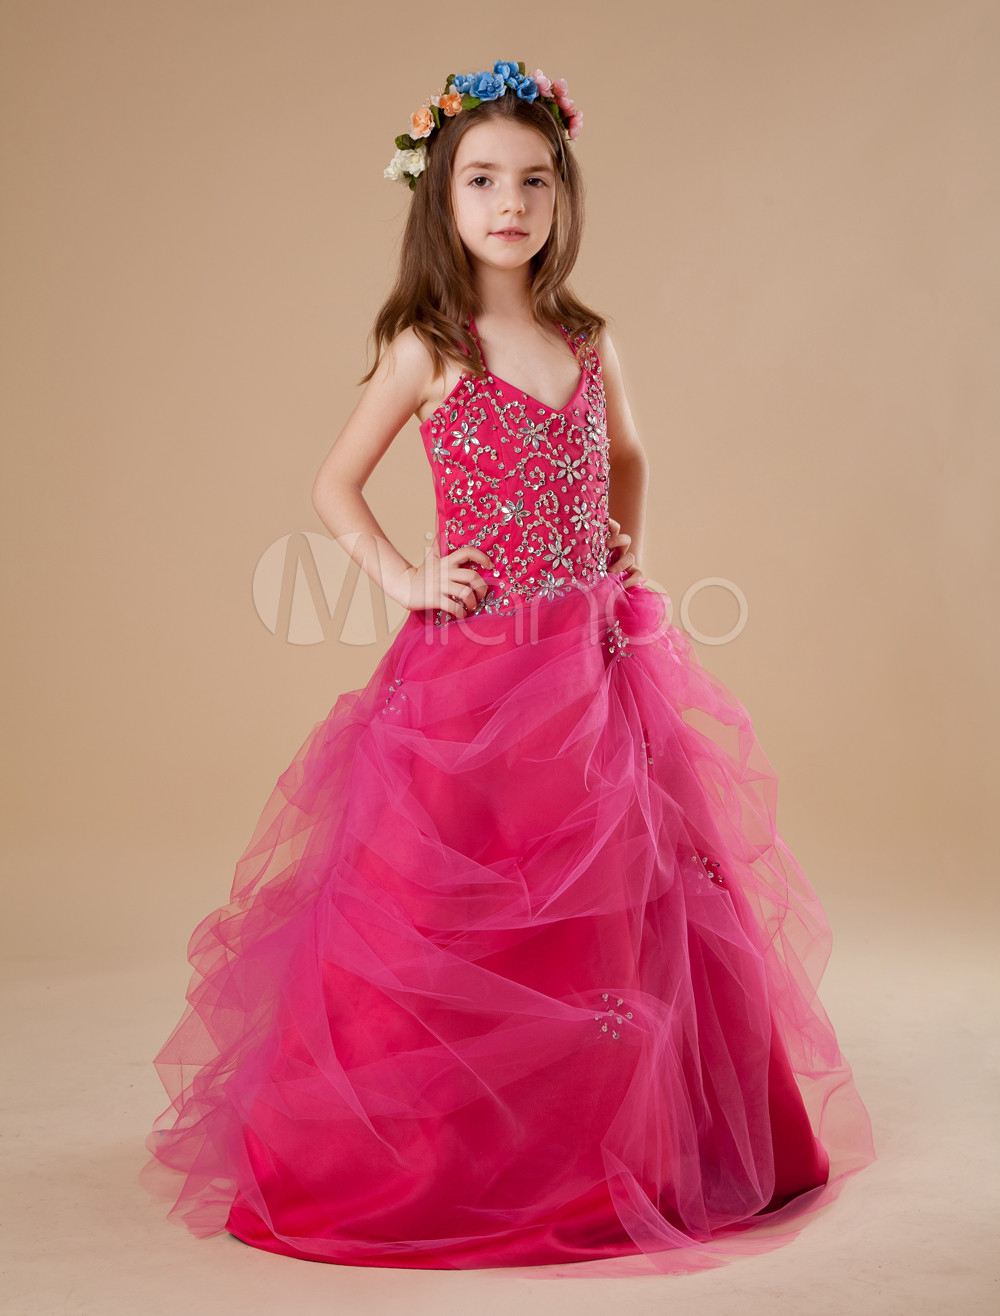 Toddler S Pageant Dress Hot Pink Tulle Halter Rhinestone